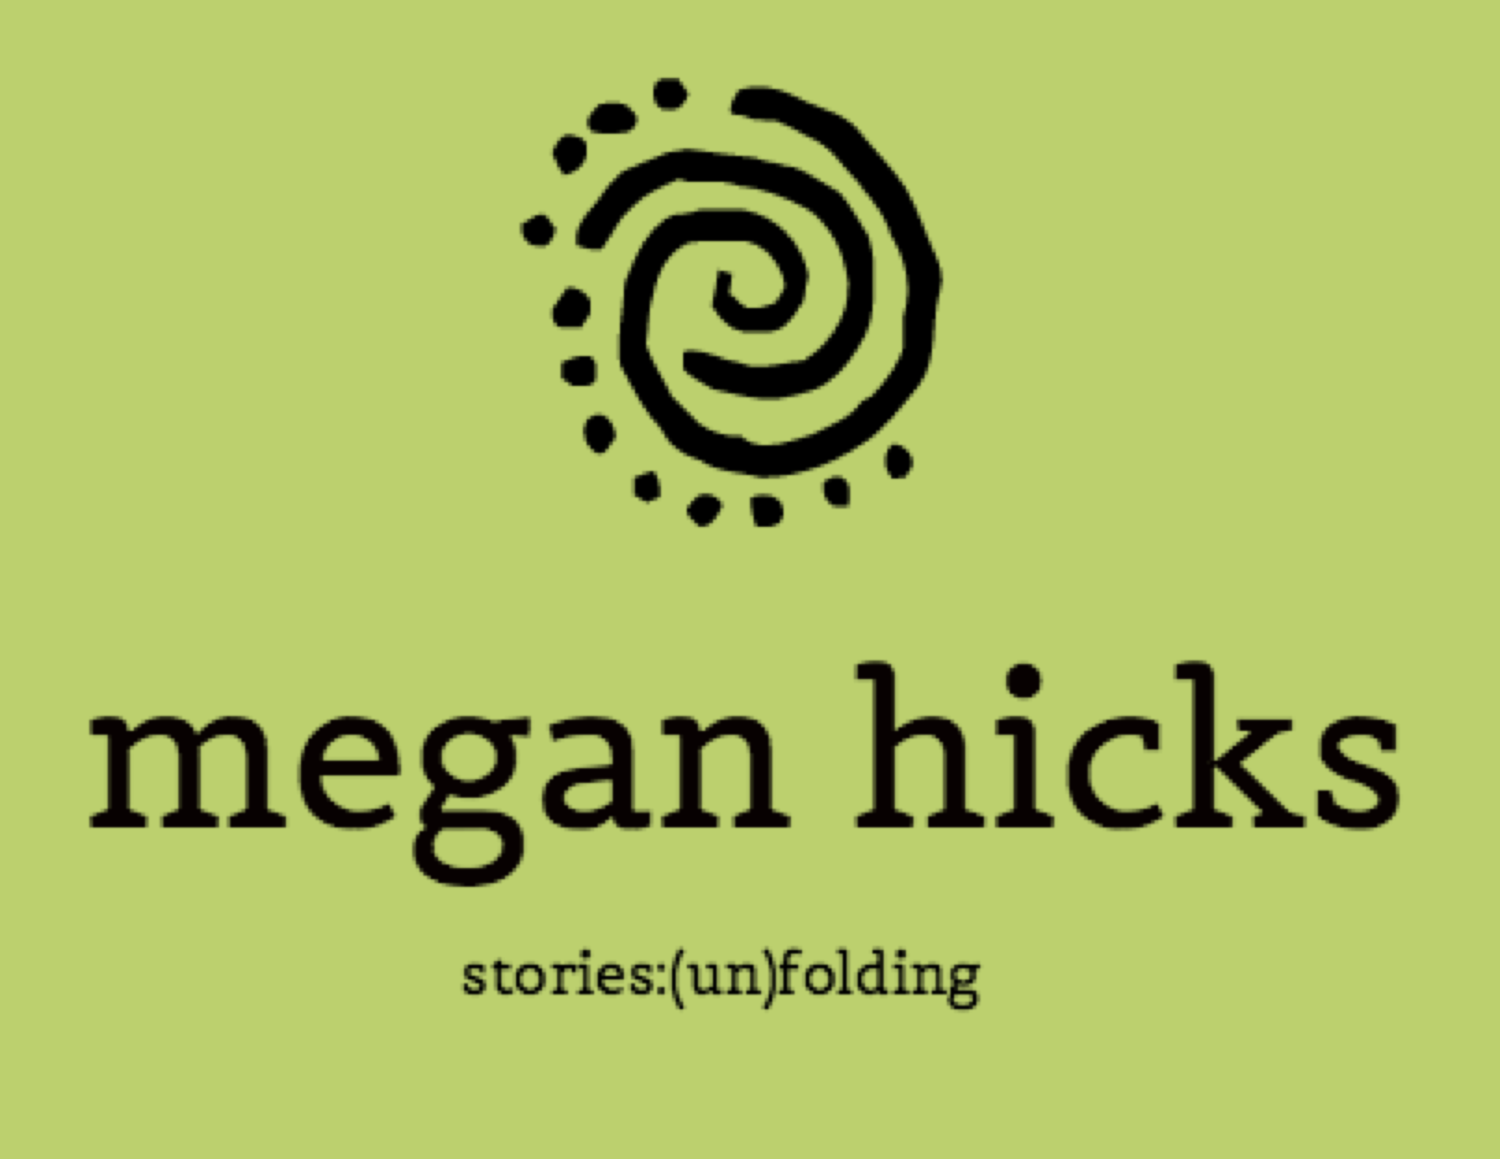 megan hicks